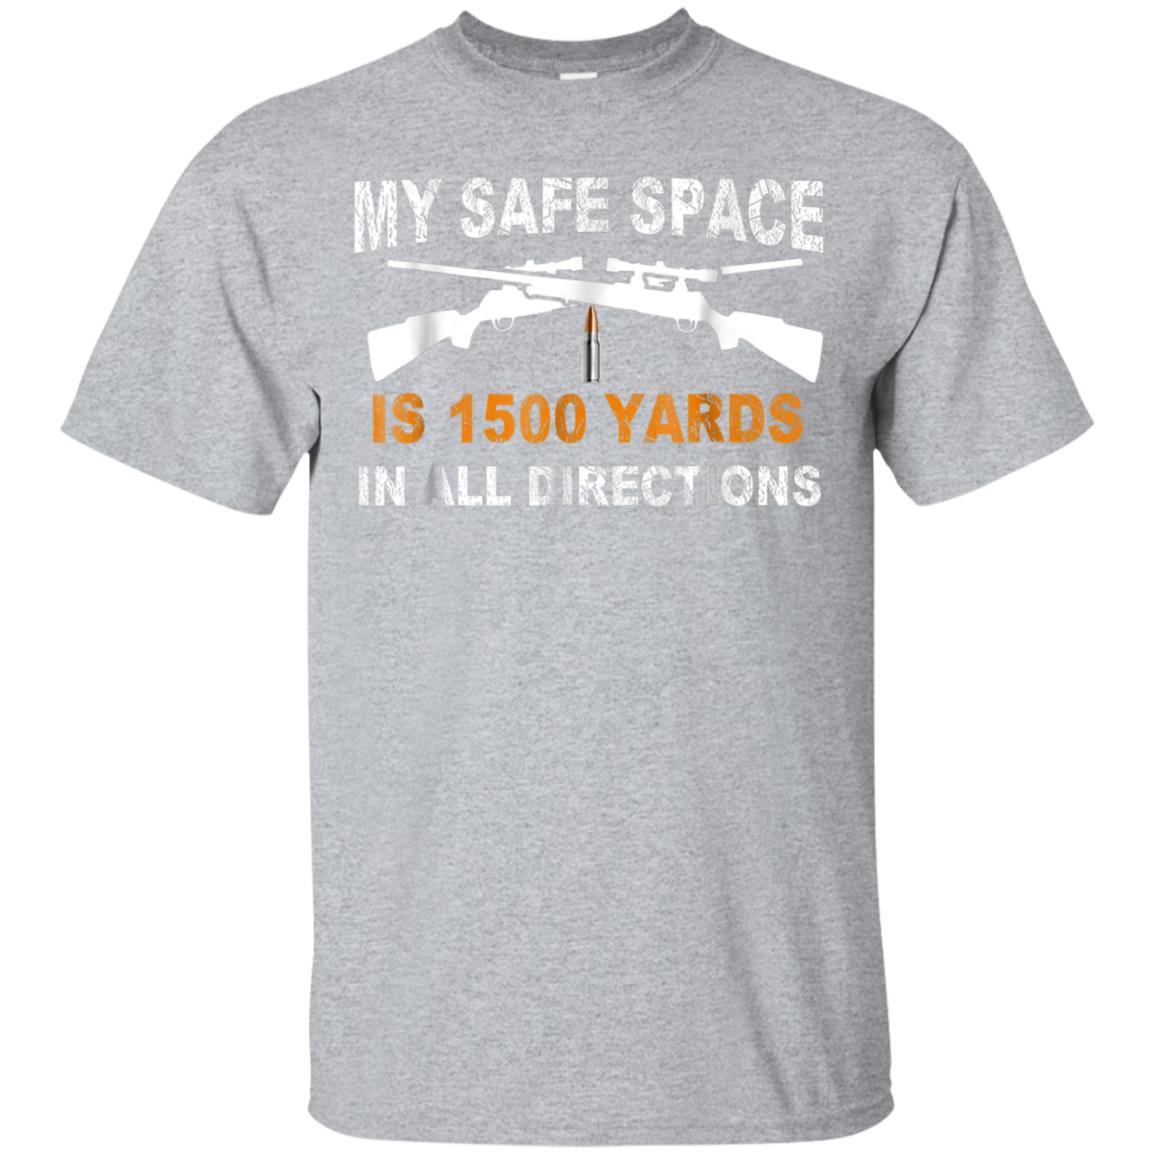 My Safe Space Is 1500 Yards Veteran's Day Gift Tshirt 99promocode